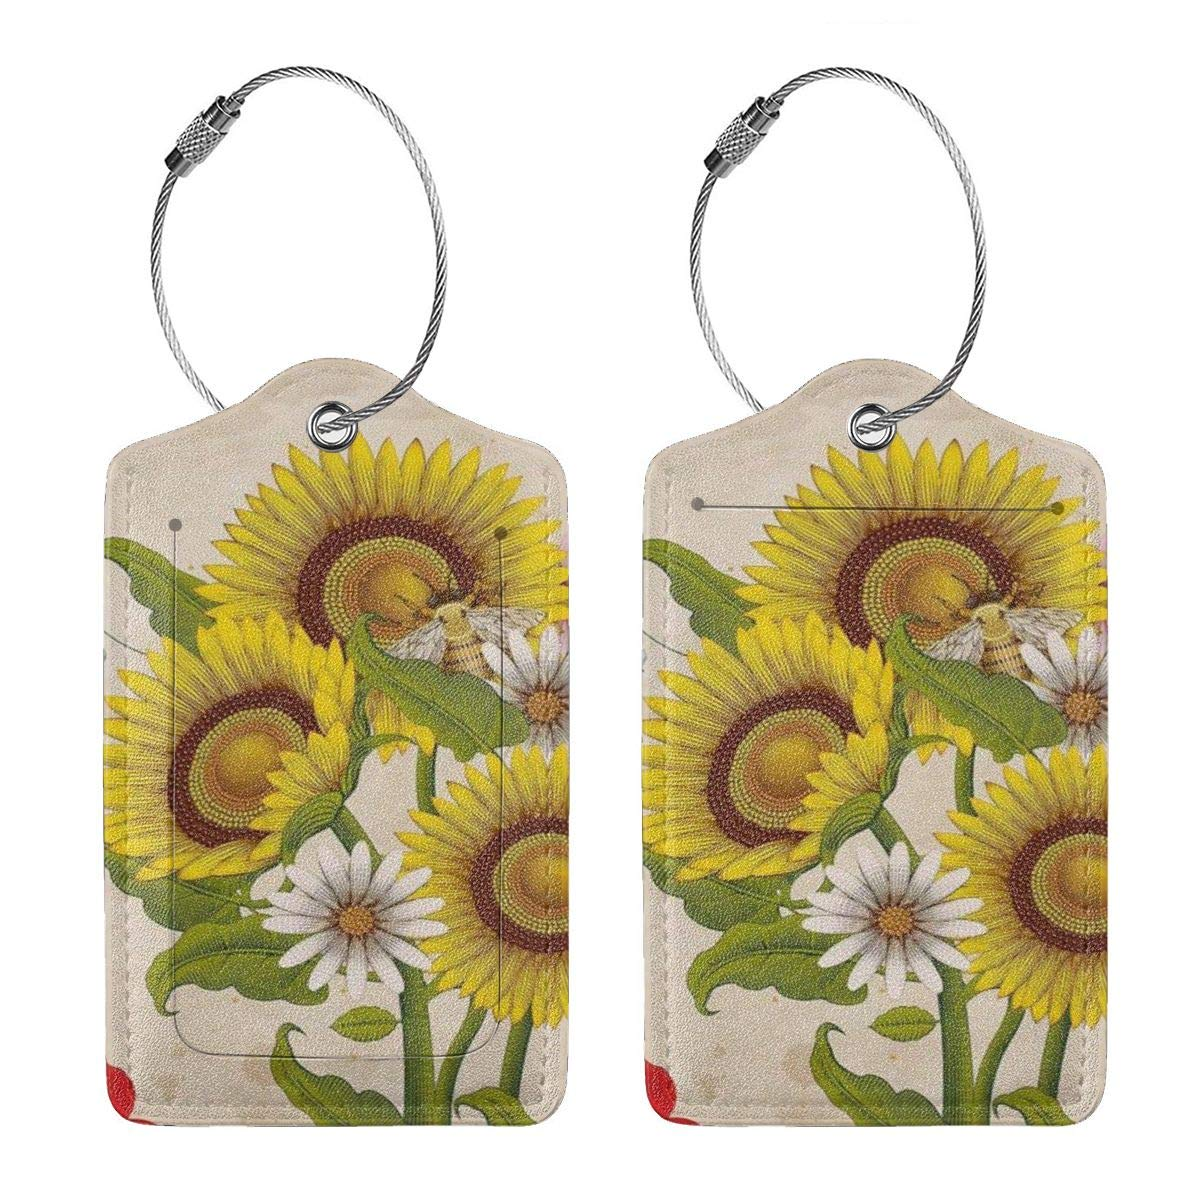 Honey Bees Wildflowers Sunflowers Leather Luggage Tags Personalized Extra Address Cards With Adjustable Strap